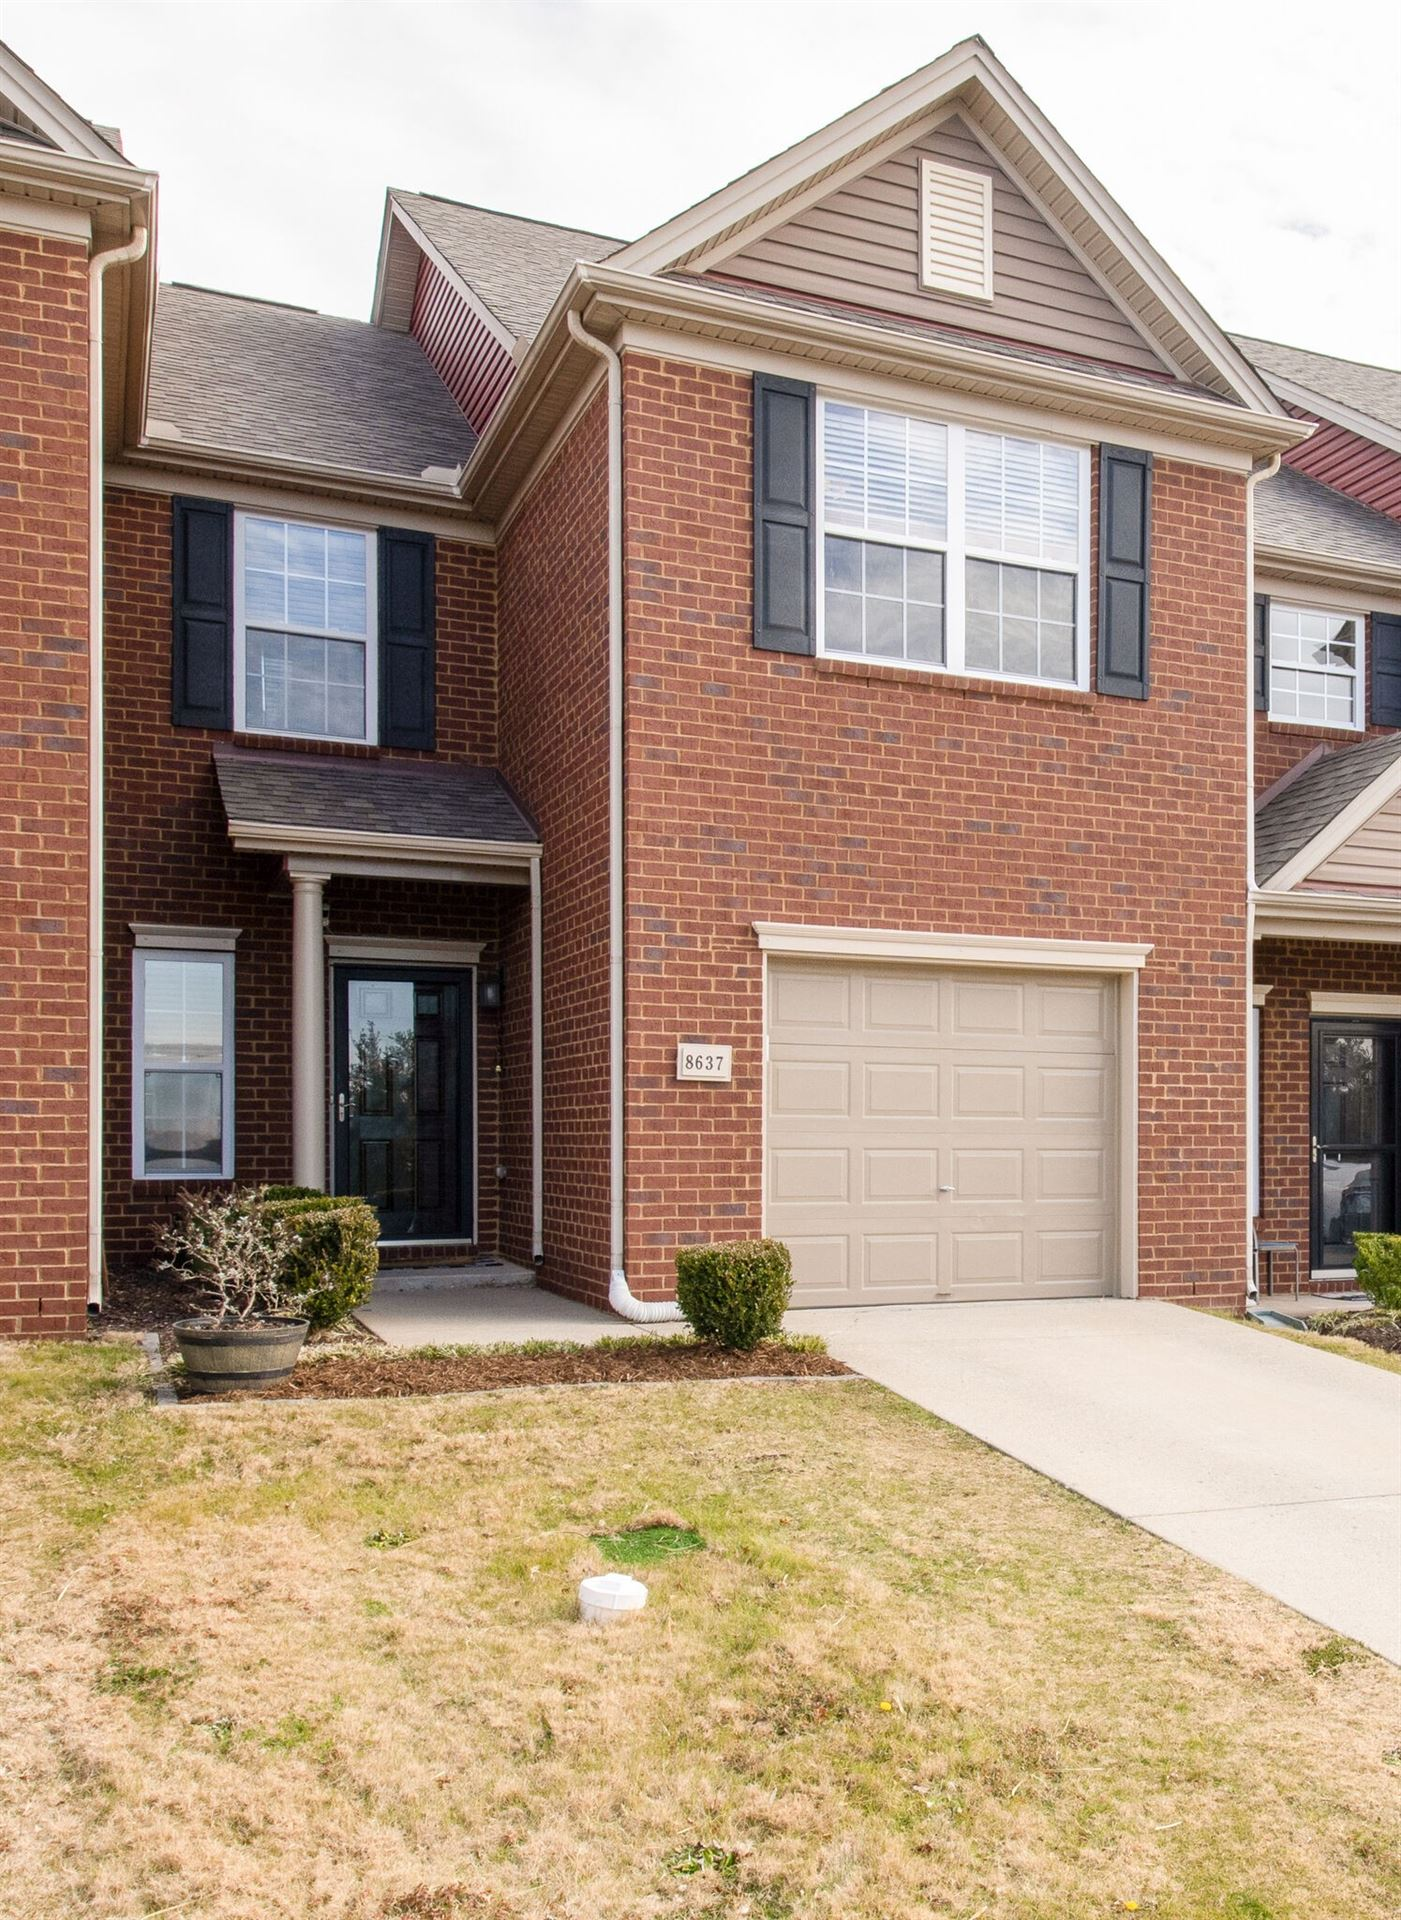 Photo of 8637 Altesse Way #8637, Brentwood, TN 37027 (MLS # 2222264)